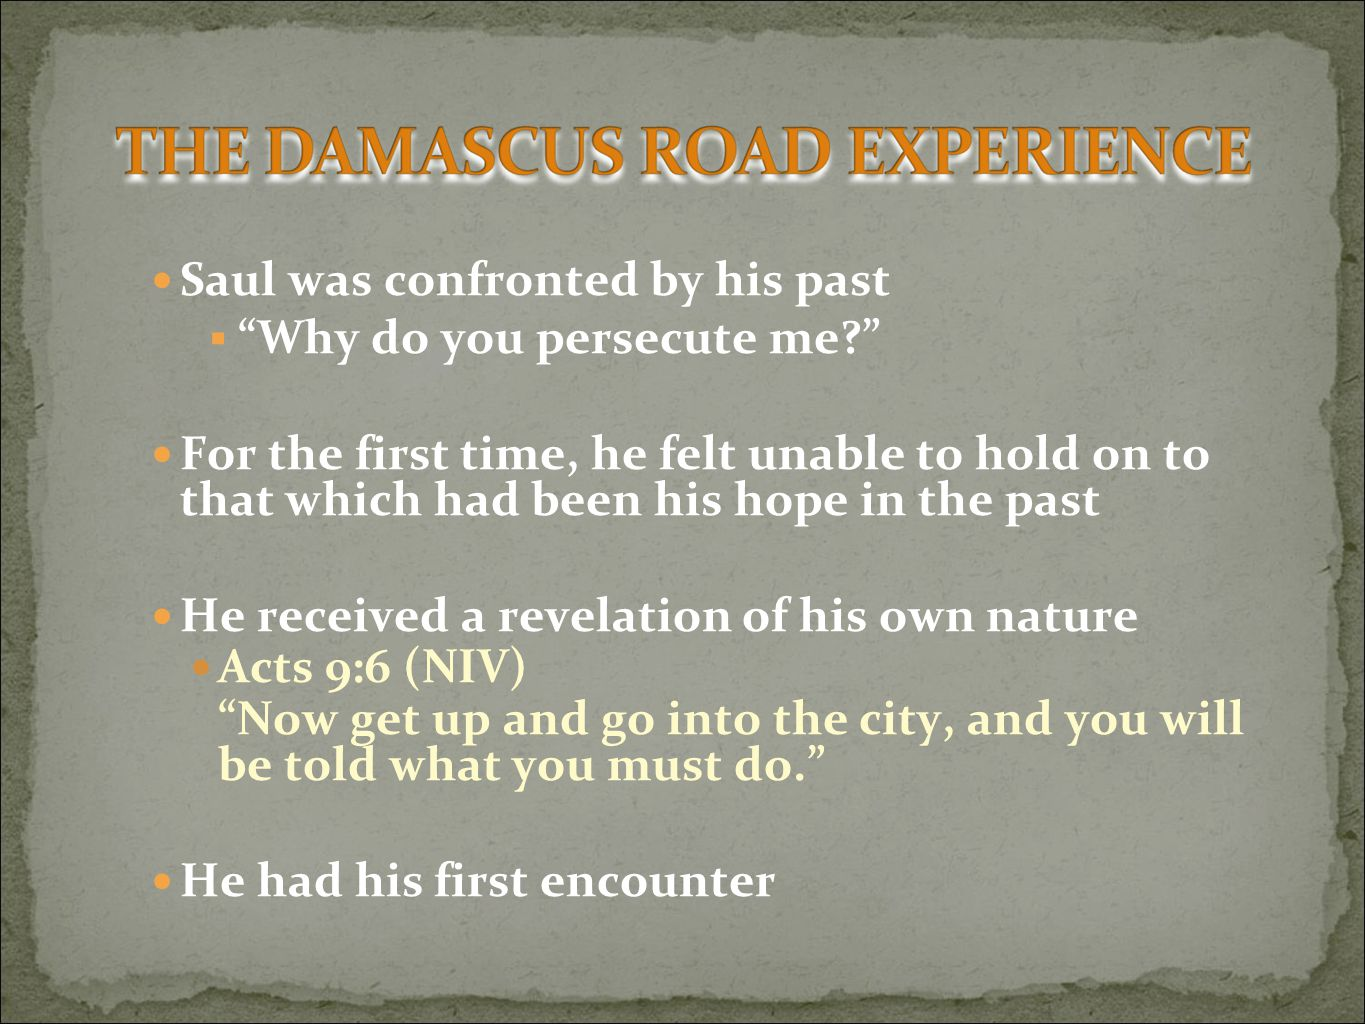 Saul was confronted by his past